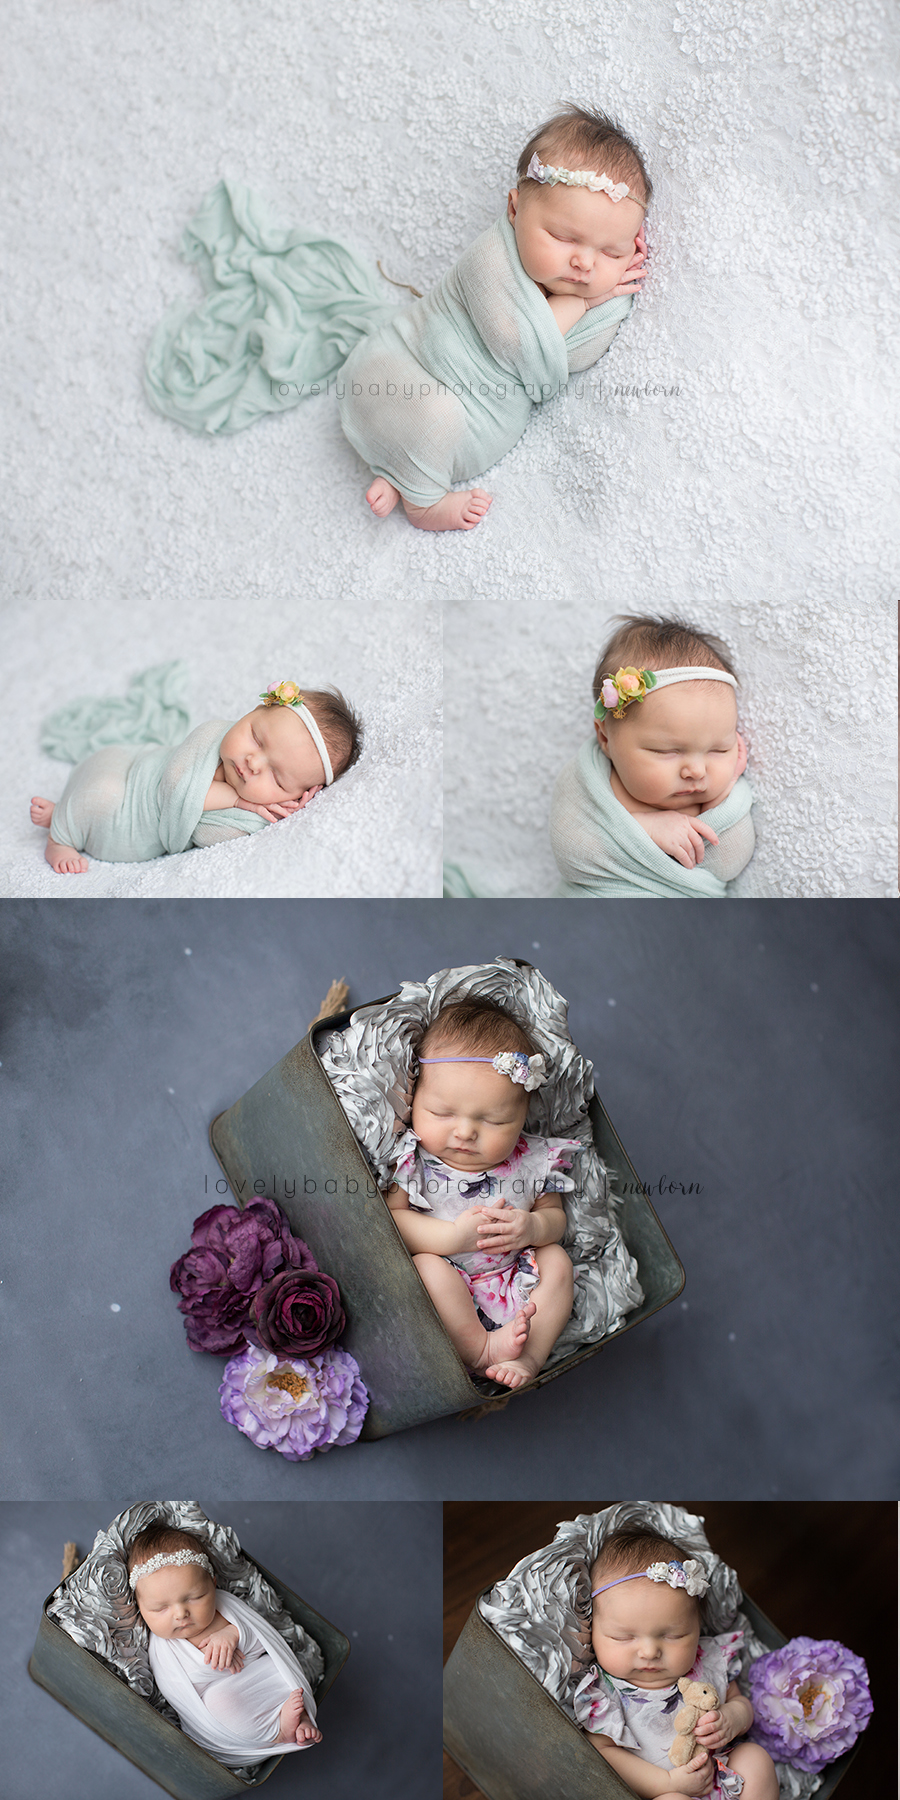 2 san diego newborn photography studio